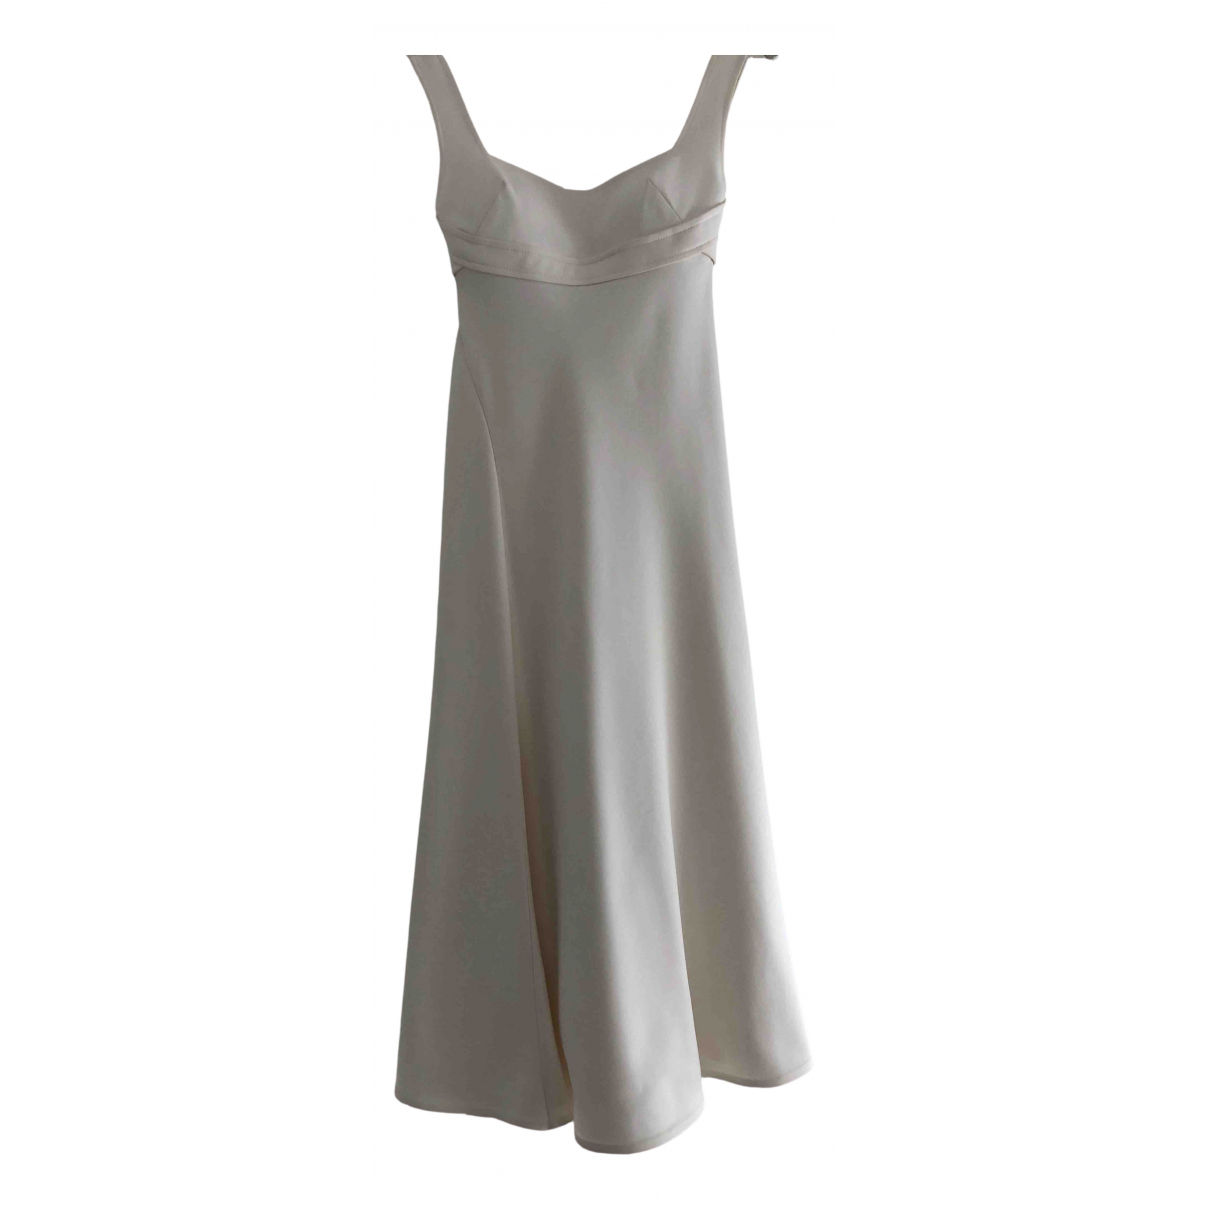 Victoria Beckham \N White dress for Women 8 UK